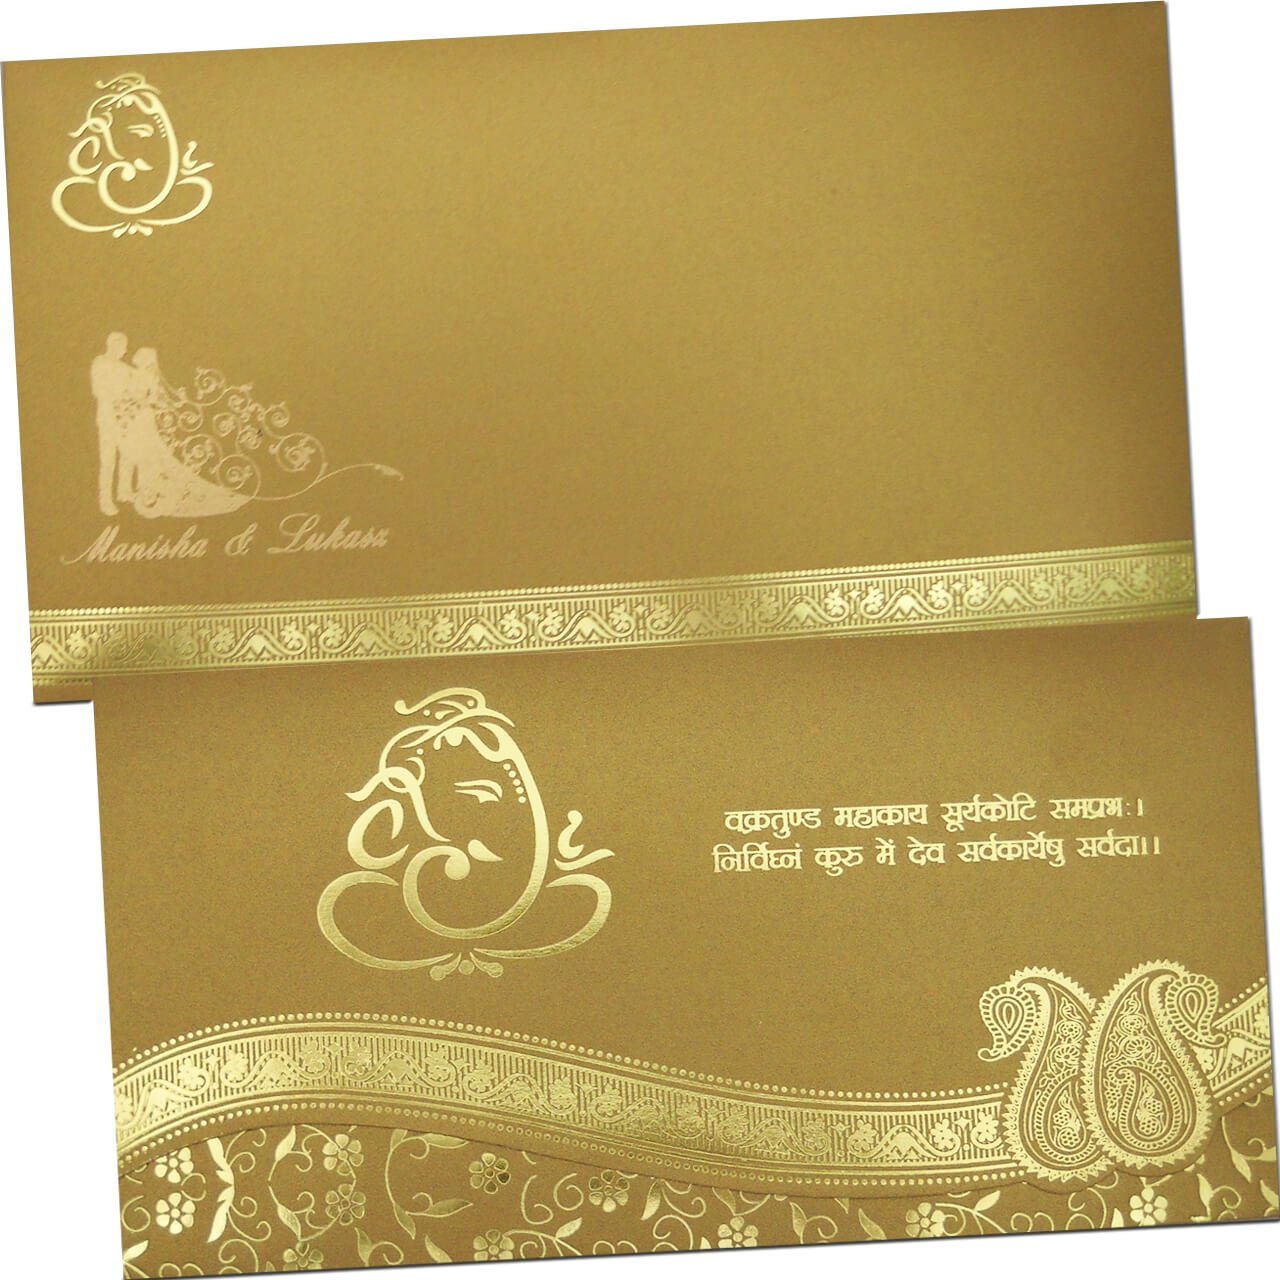 INDIA S #1 INDIAN WEDDING CARDS ONLINE STORE